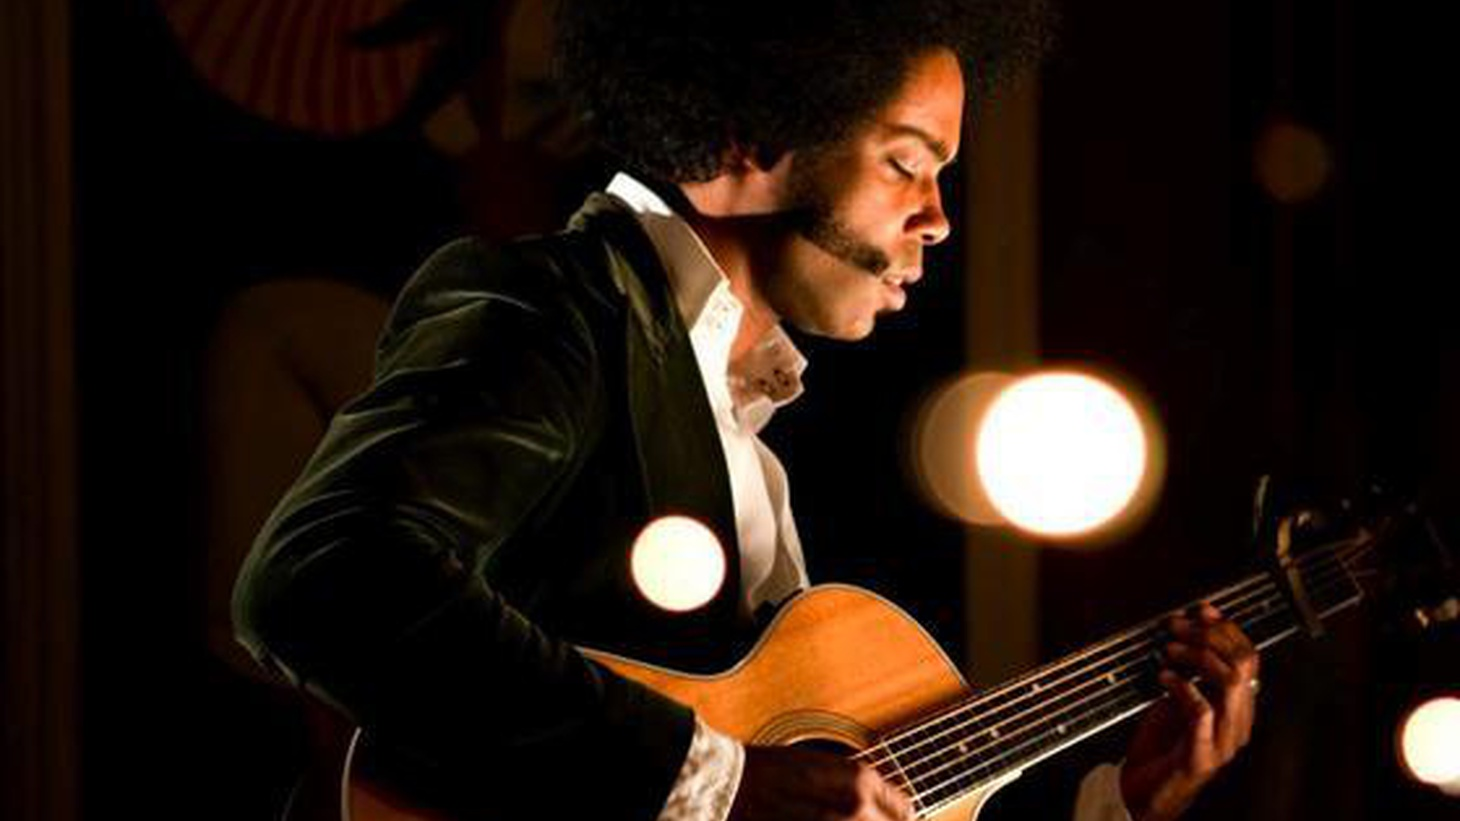 "Alex Cuba took his surname from his beloved homeland, though he now resides in Canada. As a songwriter, he's collaborated with Ron Sexsmith, Corrine Bailey Rae, and Nelly Furtado but his own recordings capture a unique tropical feel. He sings in Spanish on Today's Top Tune, ""Directo."""